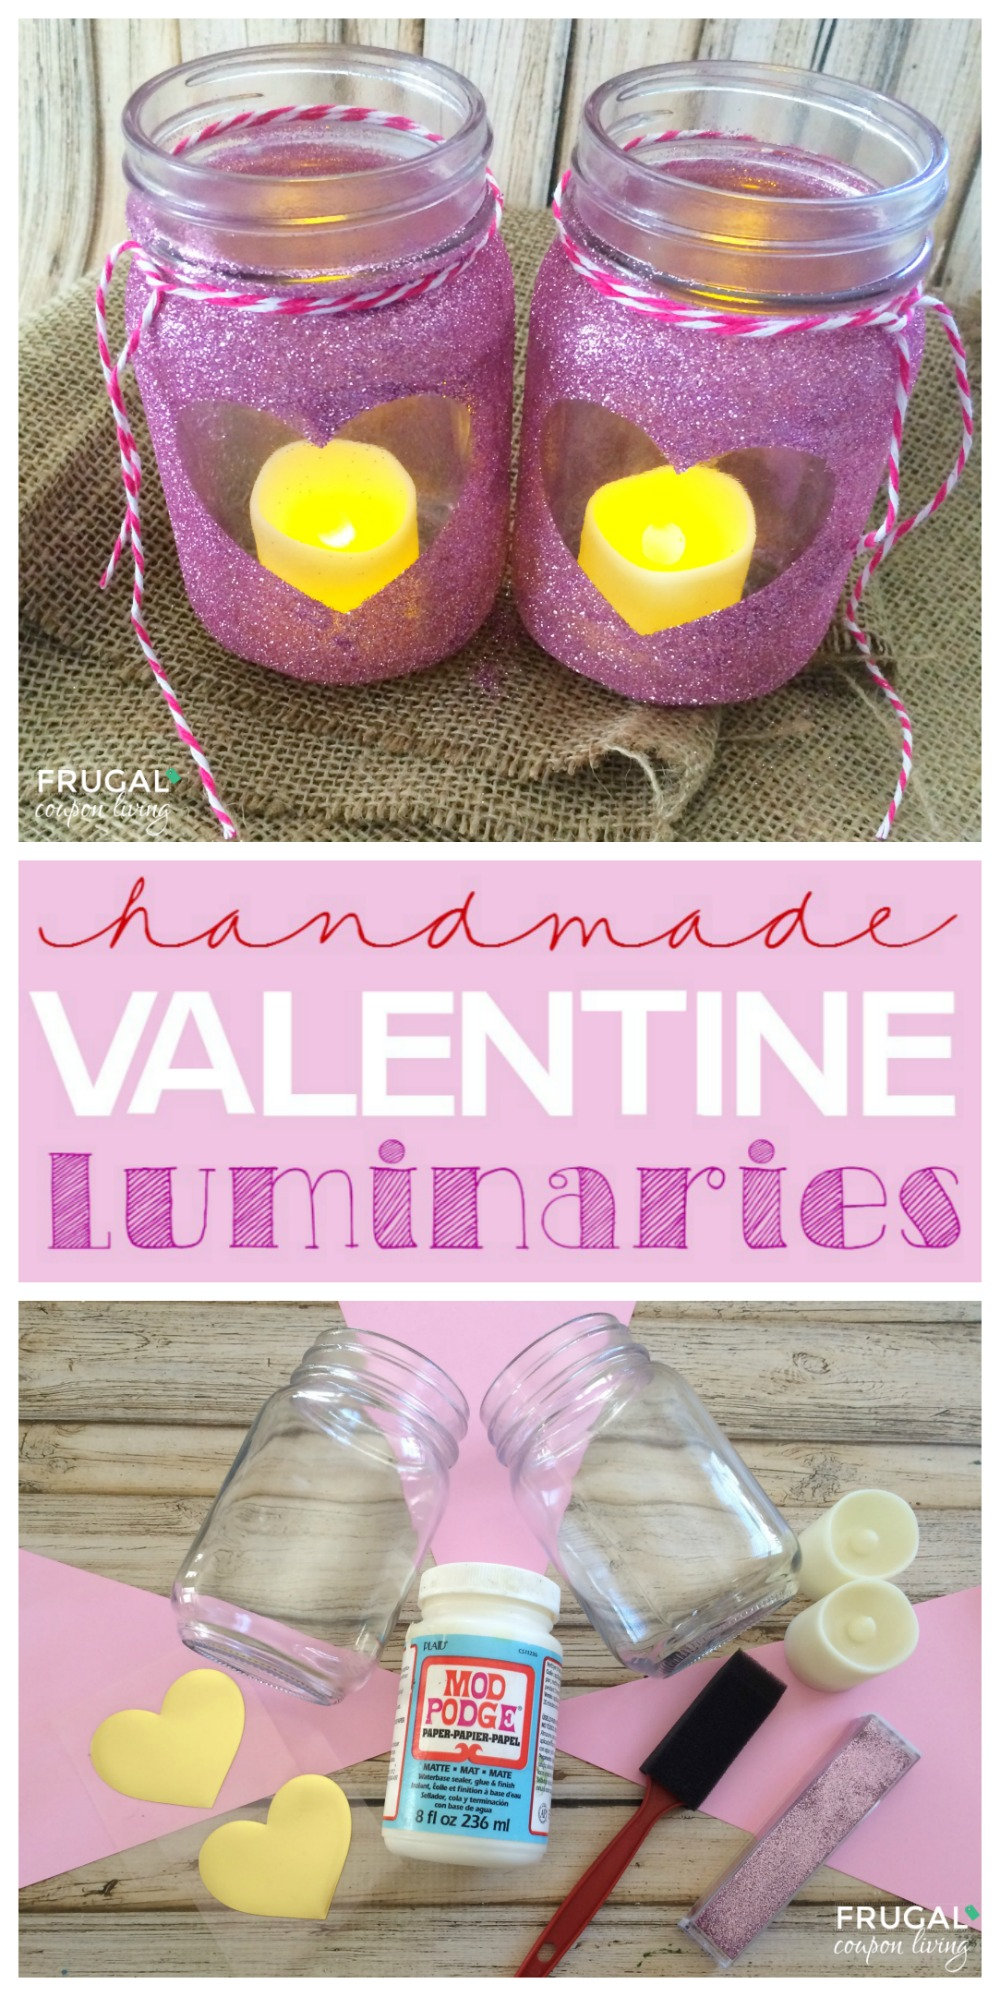 handmade-valentine-luminaries-frugal-coupon-living